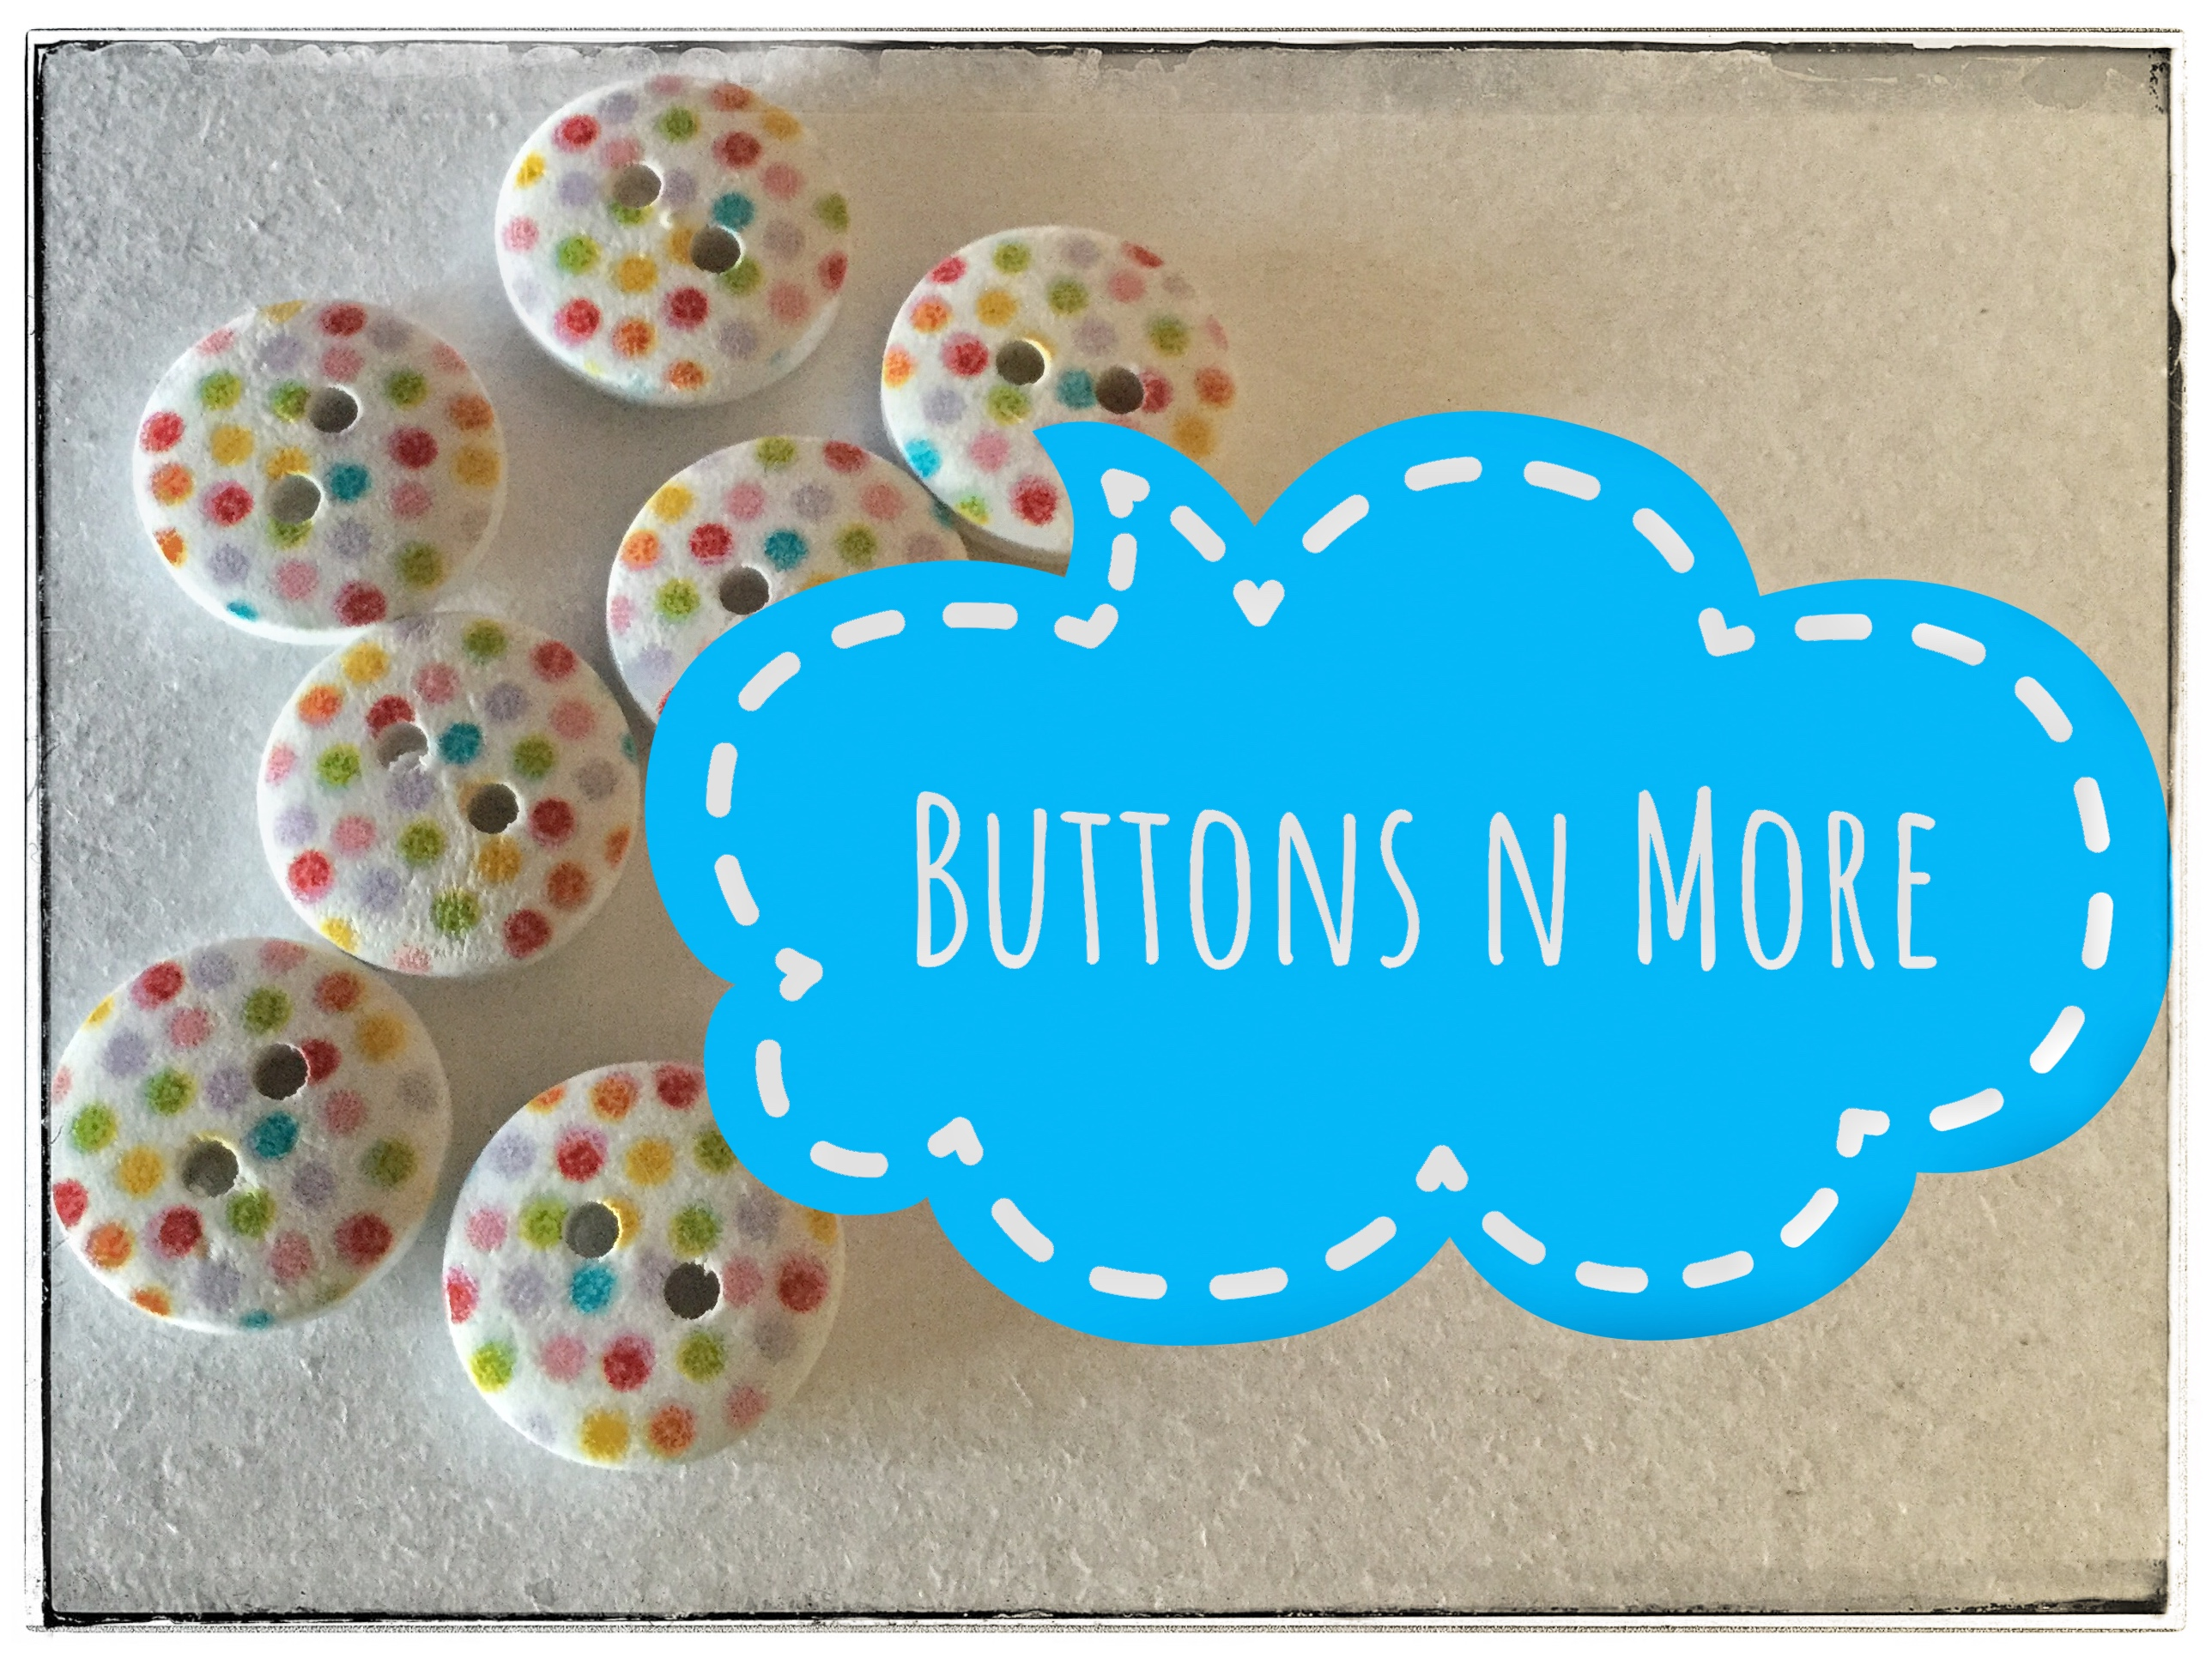 Buttonsnmore